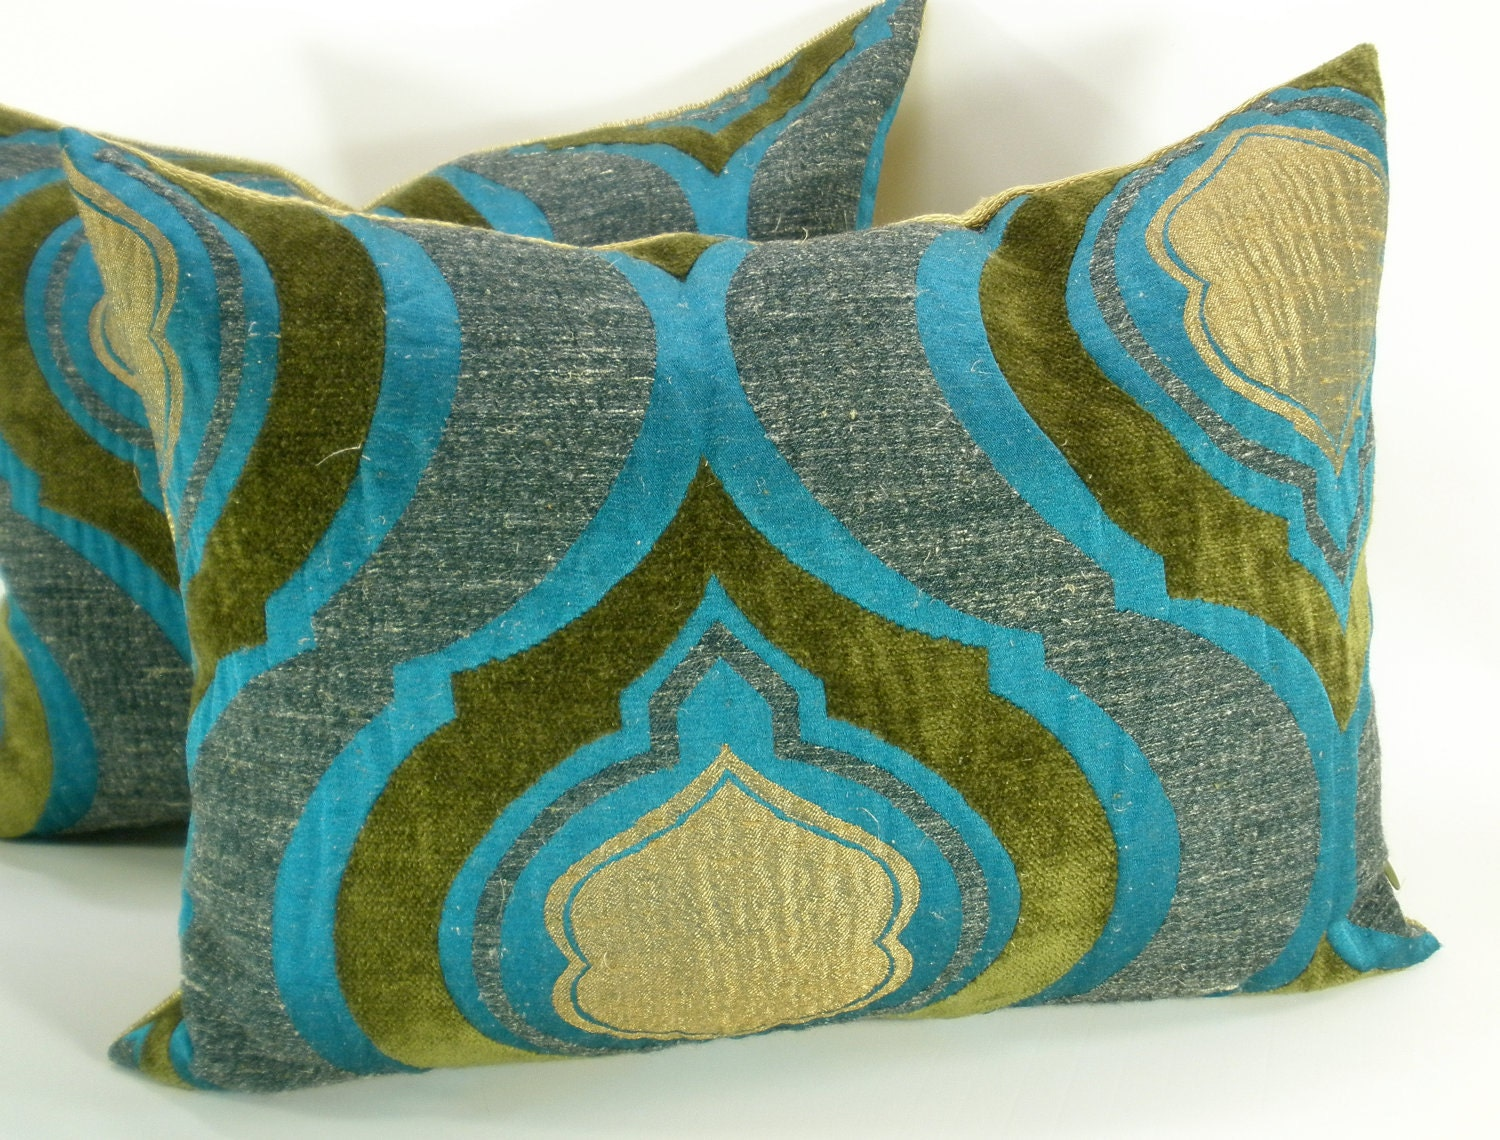 Throw Pillow Turquoise : Turquoise Velvet Peacock pillow cover 12 x 16